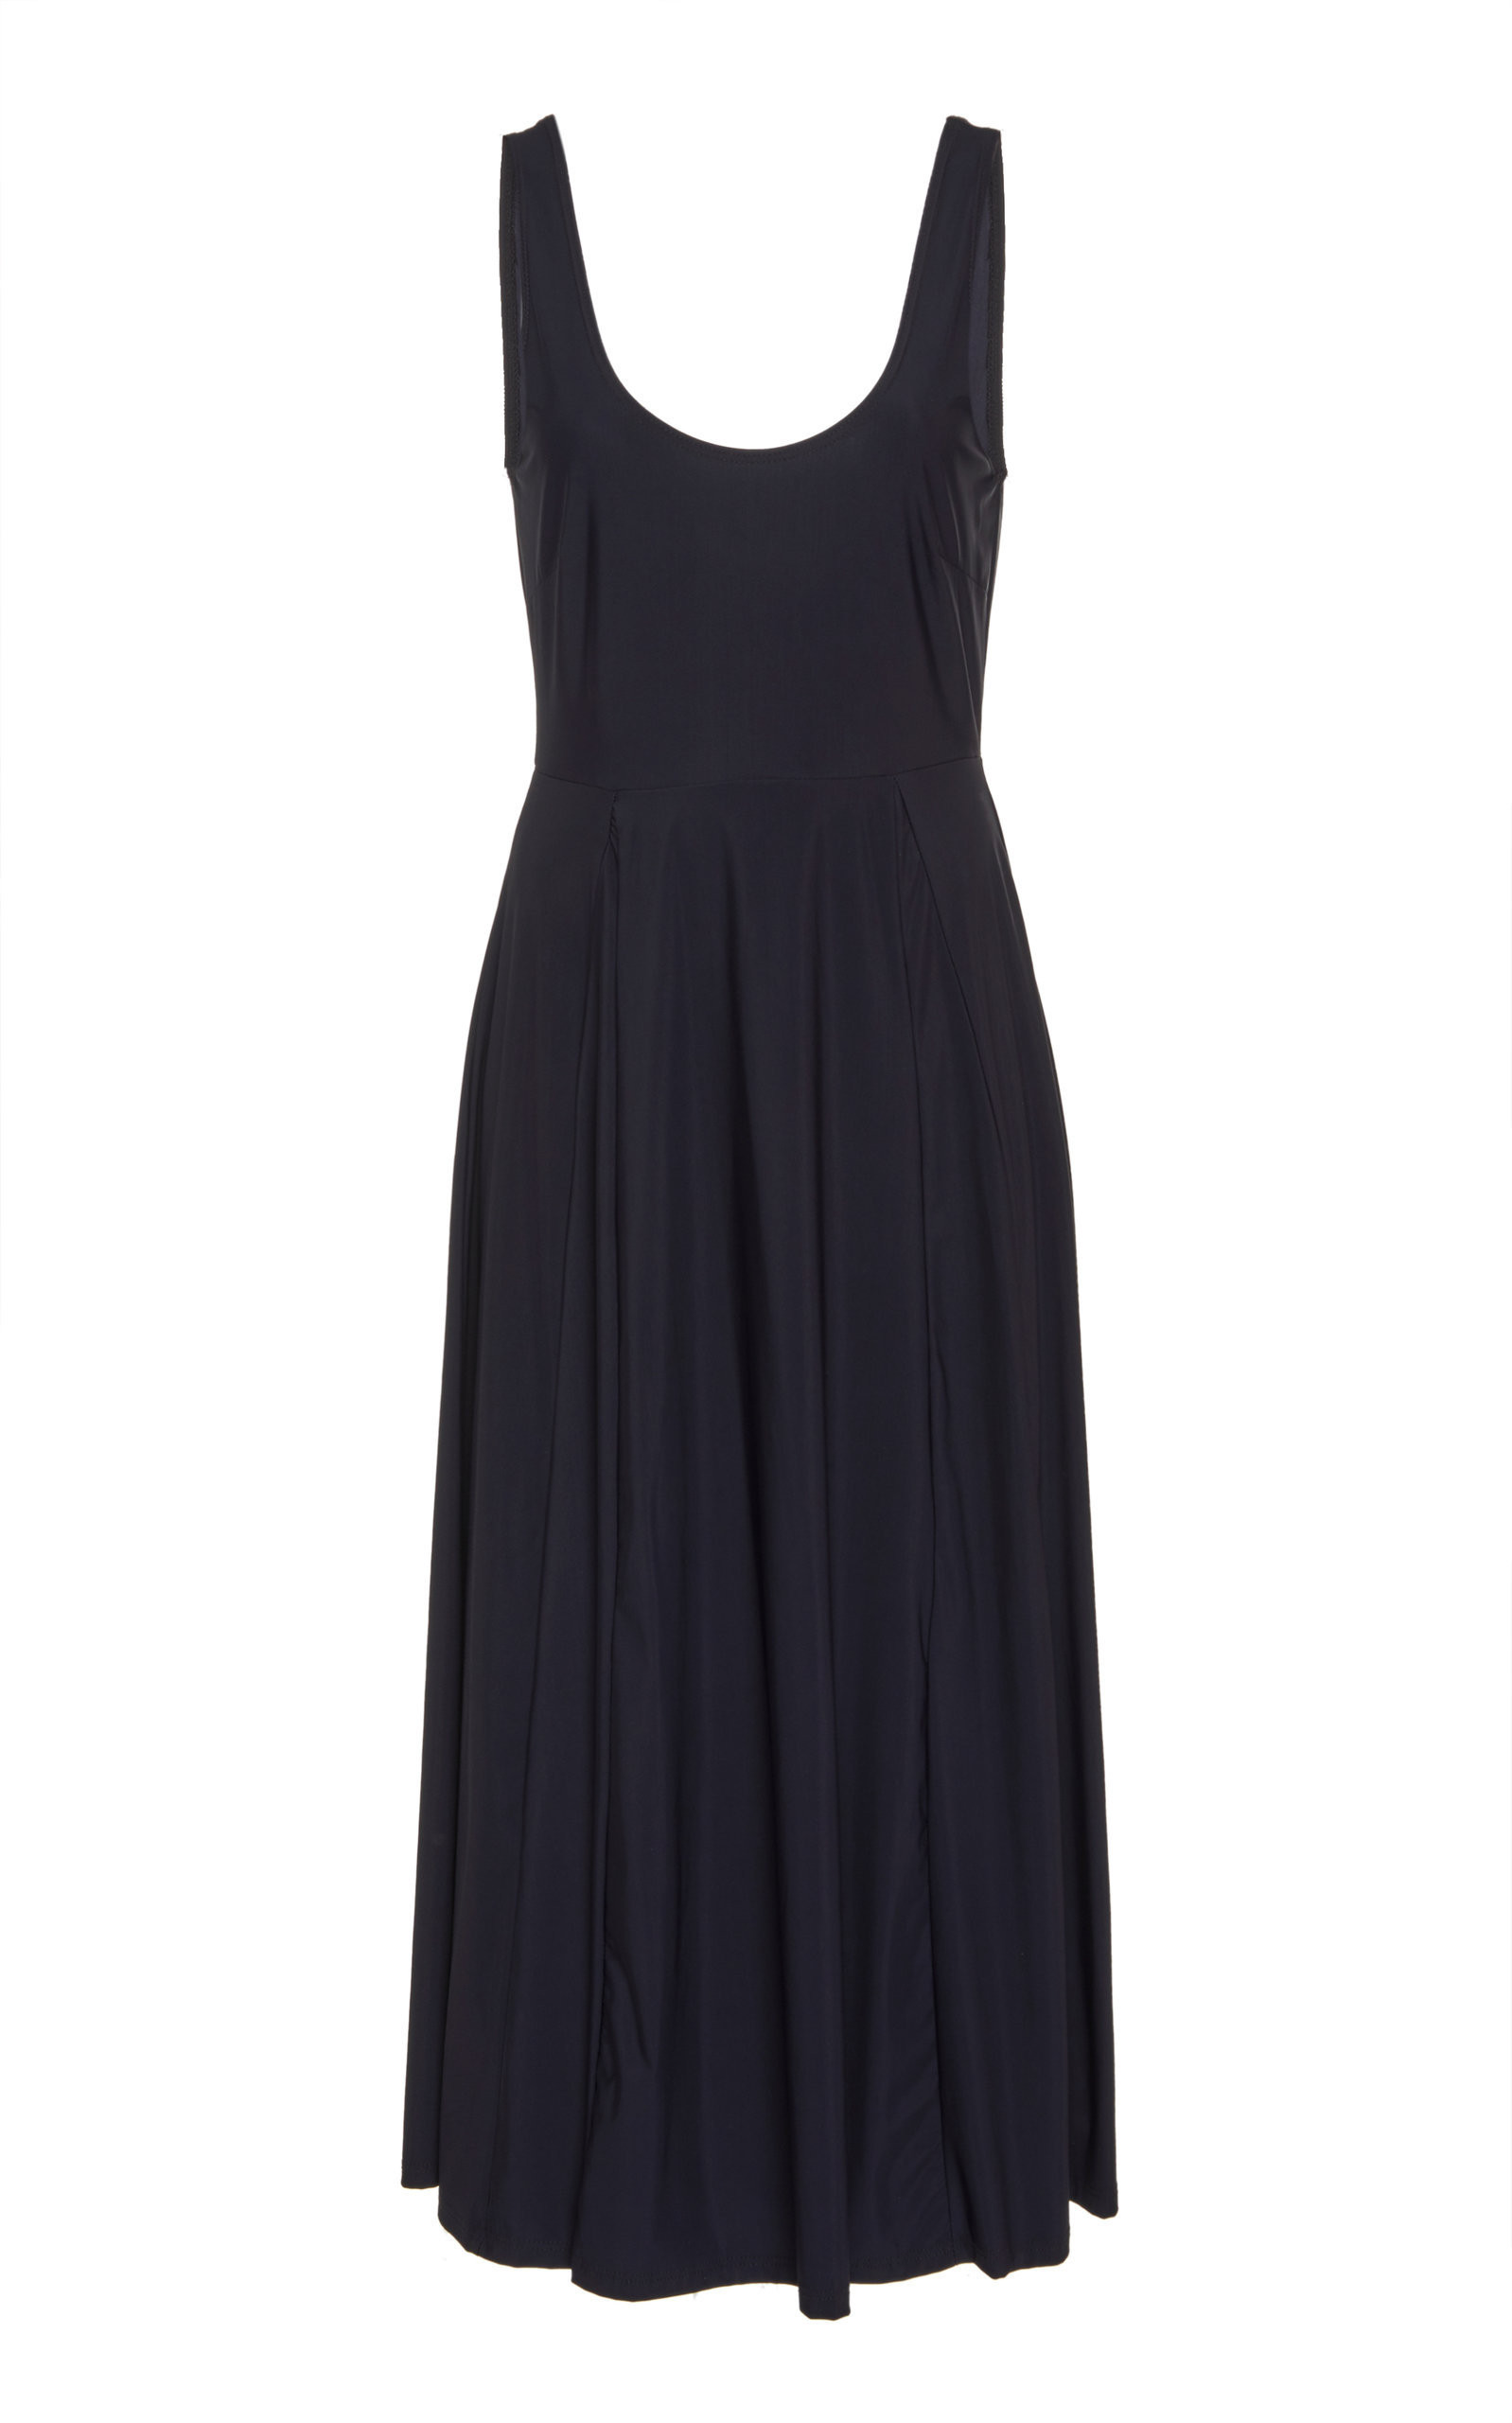 Buy Ciao Lucia Lido Black Midi Dress online, shop Ciao Lucia at the best price